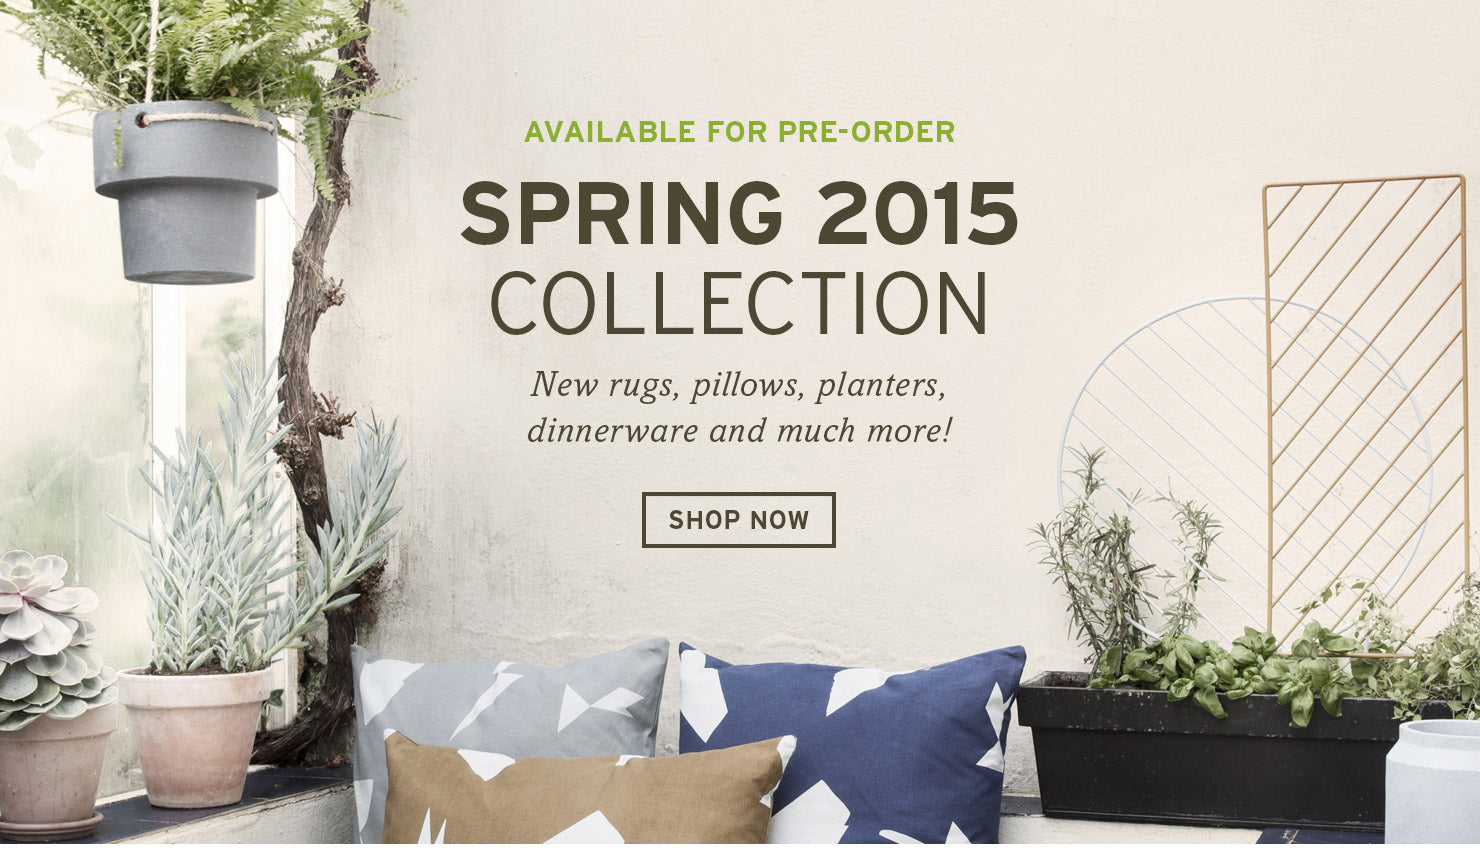 SPRING 2015 COLLECTION IS HERE. Available for pre-order now. New rugs, pillows, planters, dinnerware and much more! SHOP NOW >